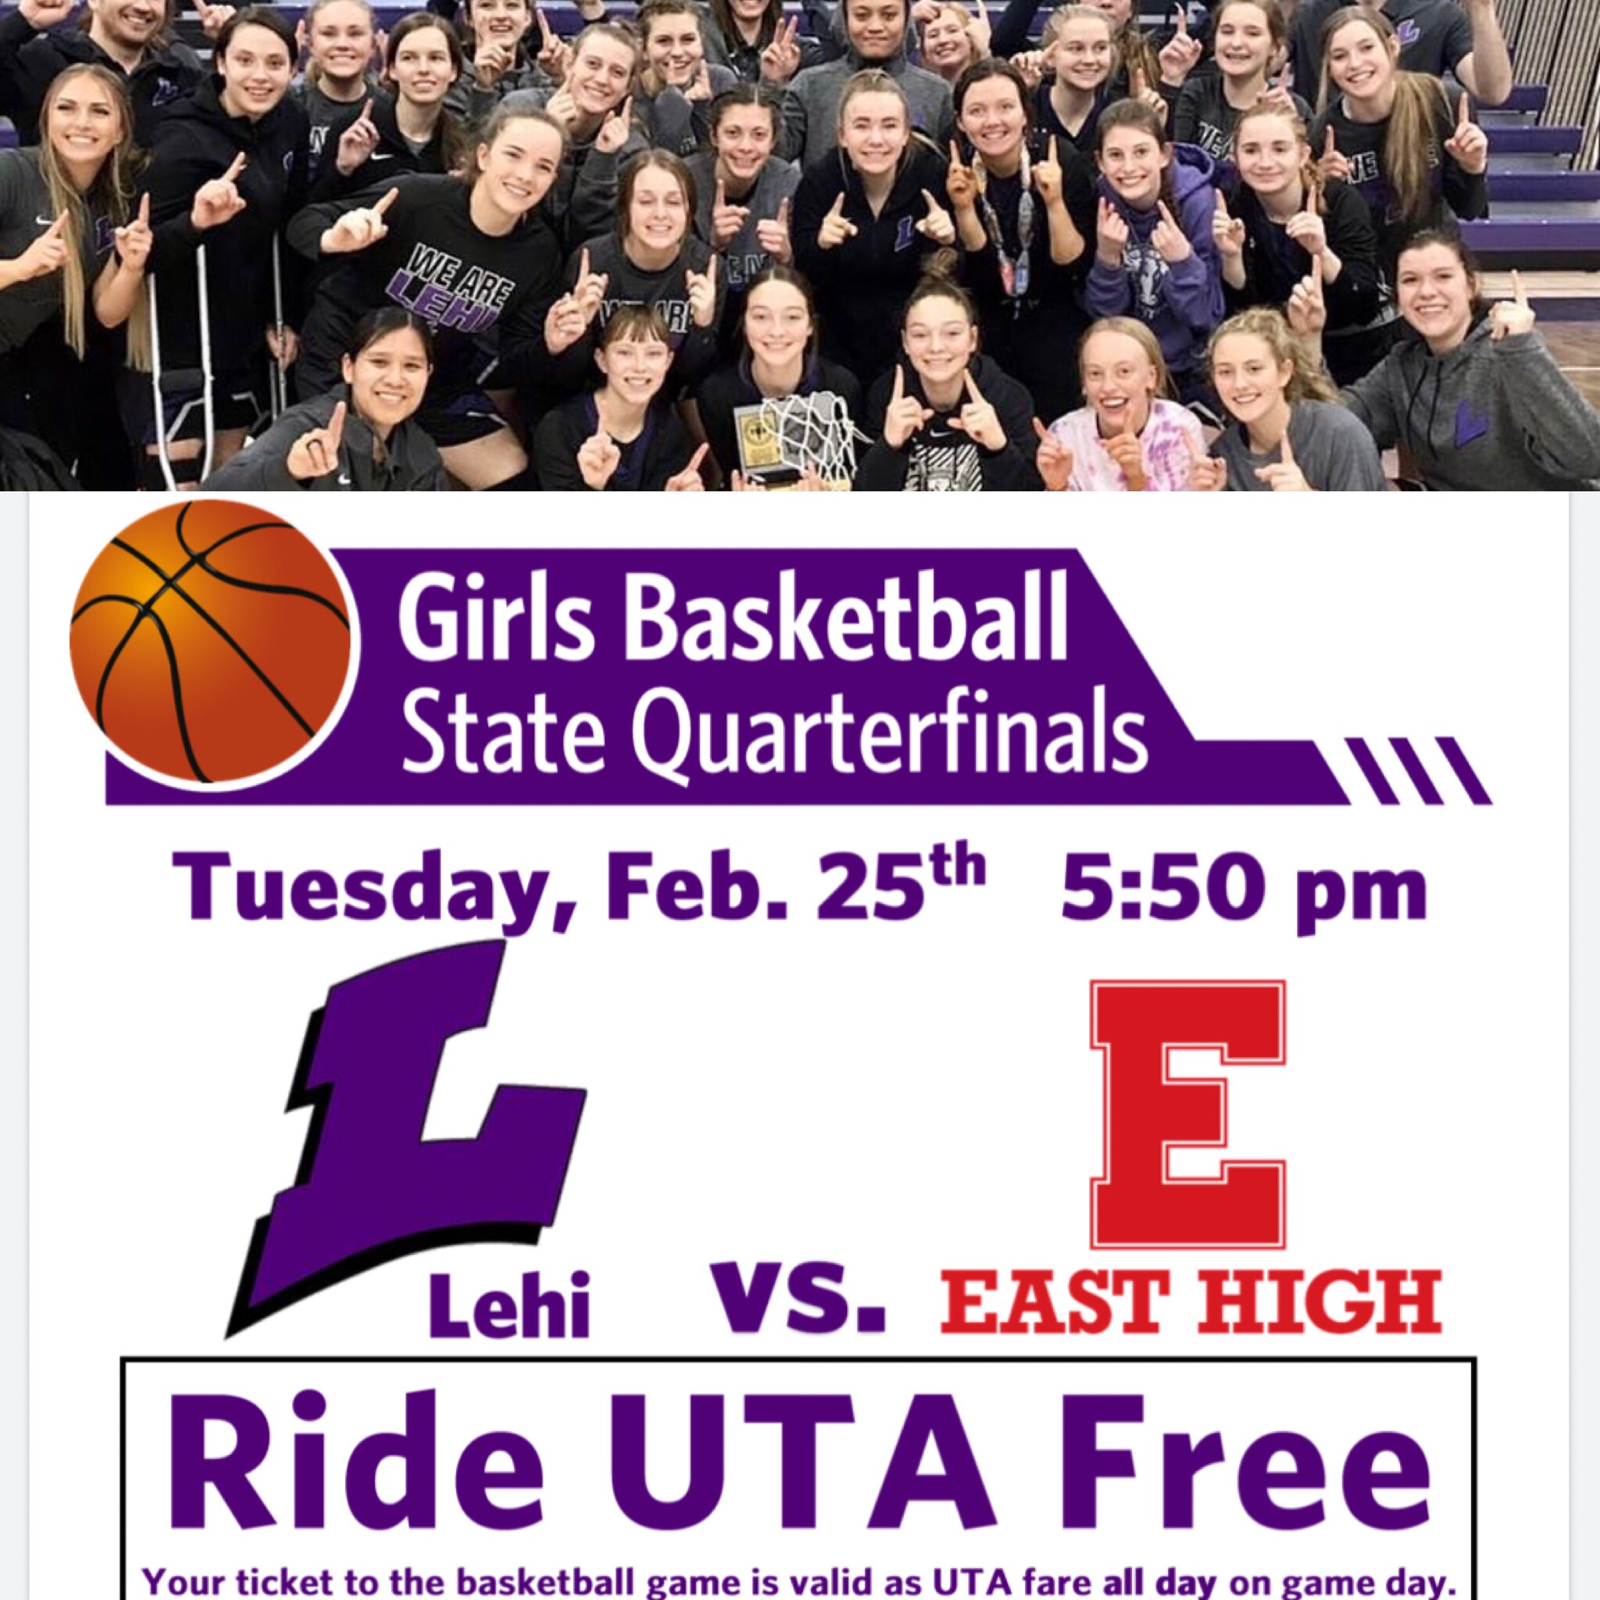 Hey Lehi fans, come out and cheer our Girls Basketball team in the  Quarterfinals tonight at 5:50 pm against East High @ Huntsman Center at University of Utah . Tickets $10 Adults $5 for students and seniors